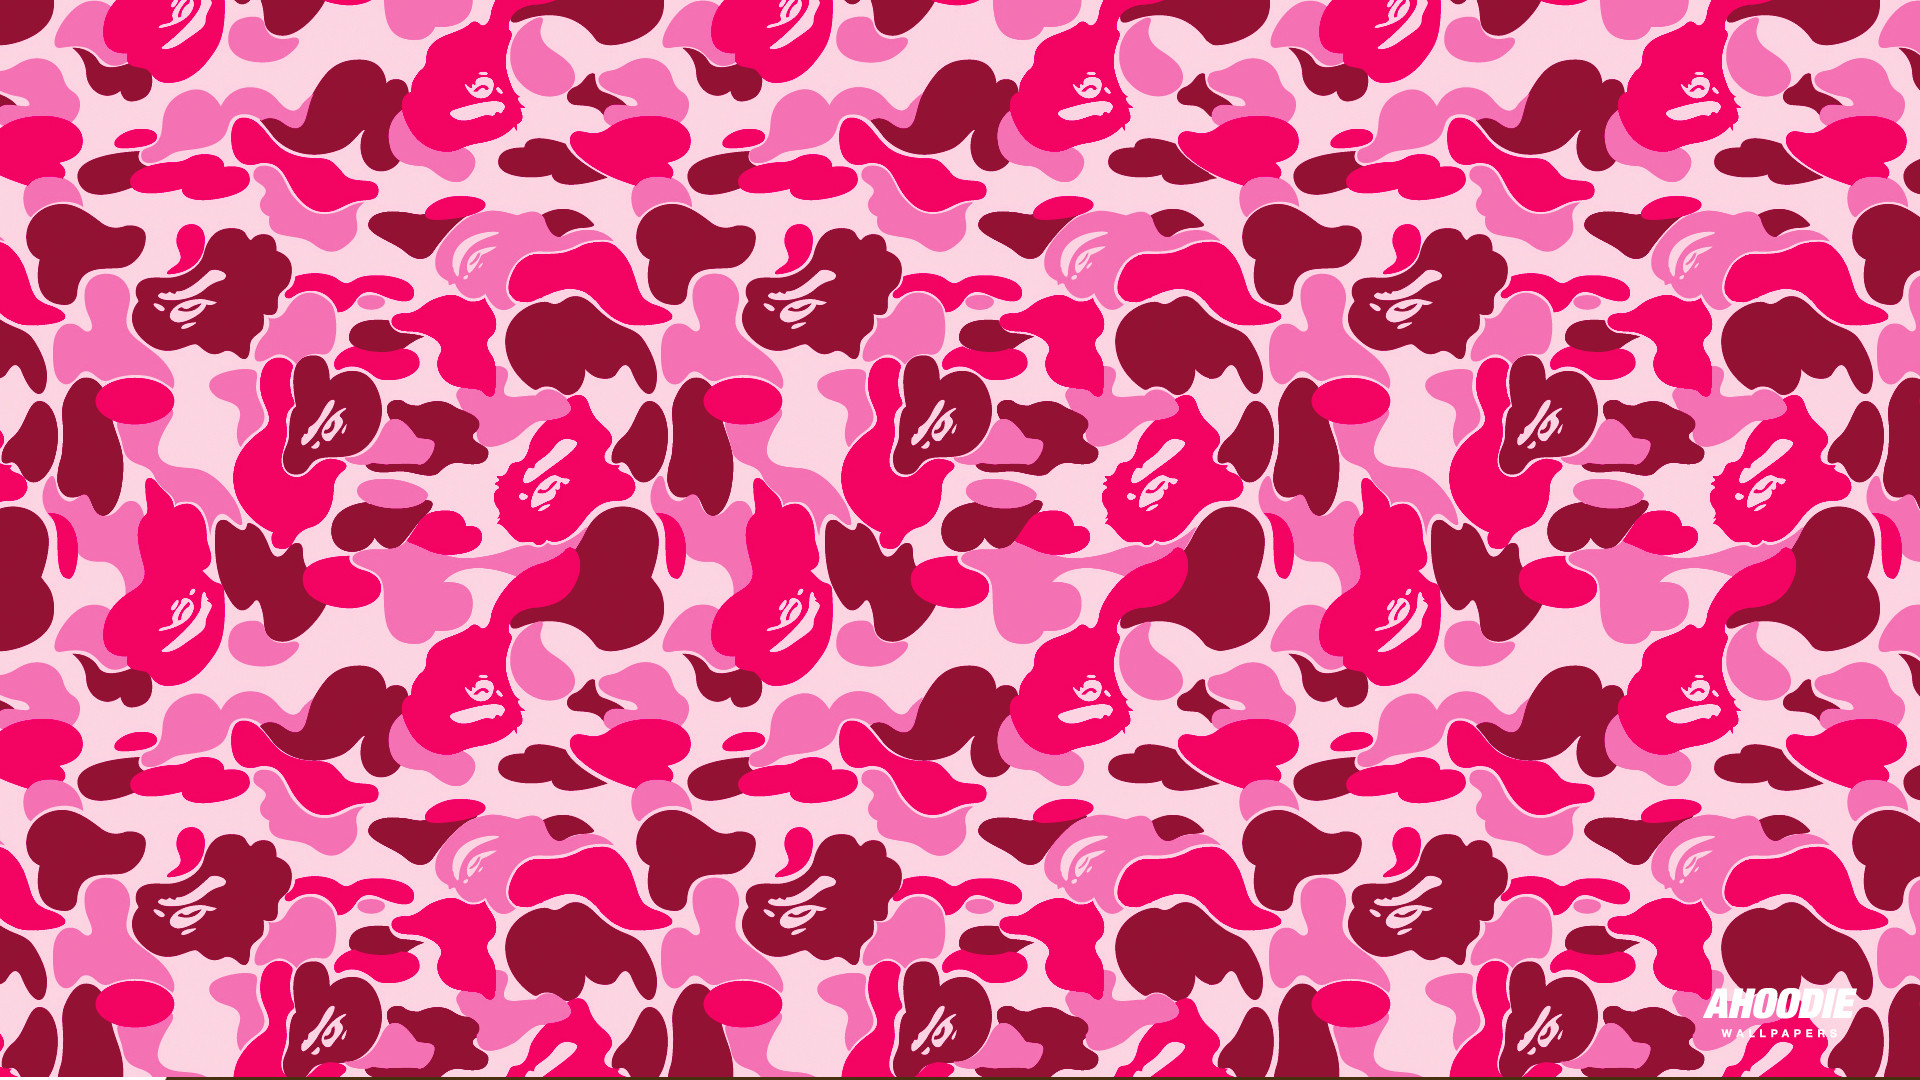 28 best images about Camo on Pinterest | Truck decals, Pink camo .